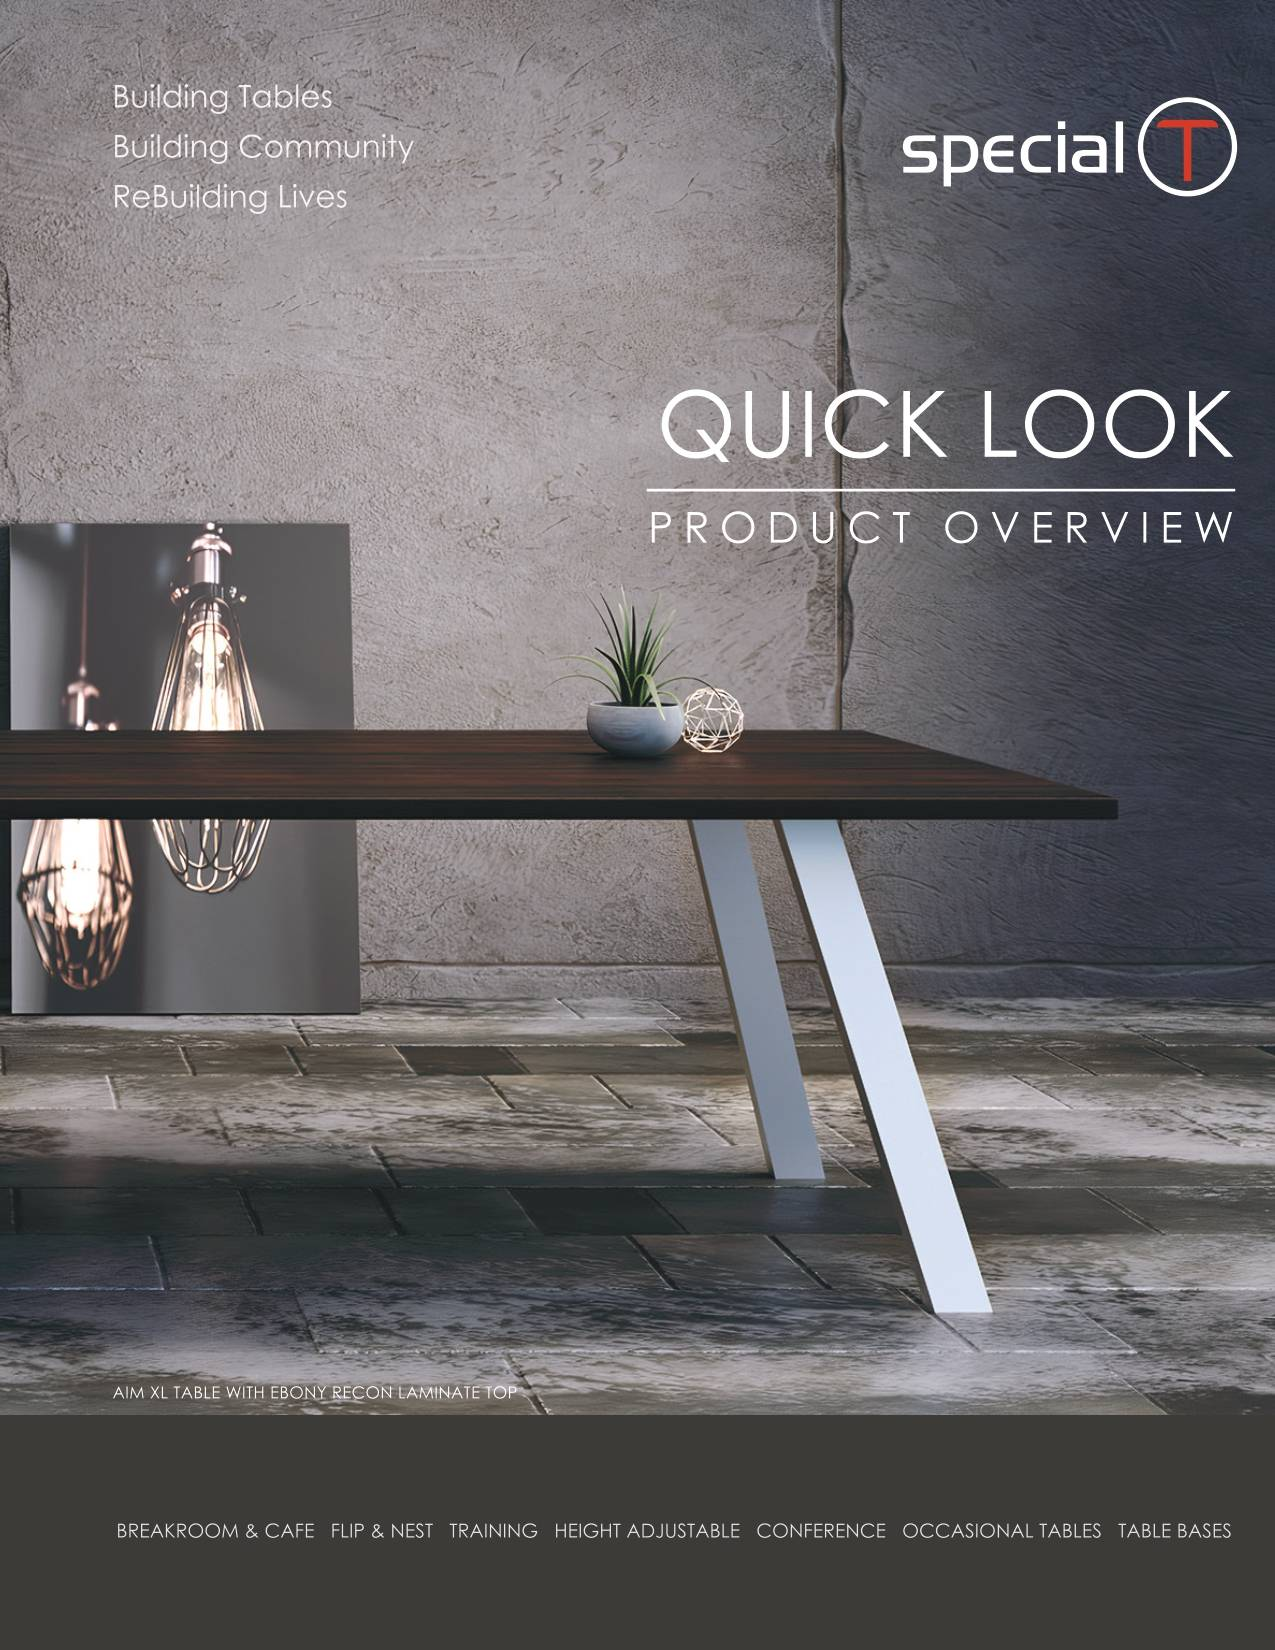 Special T Furniture Product Overview Brochure